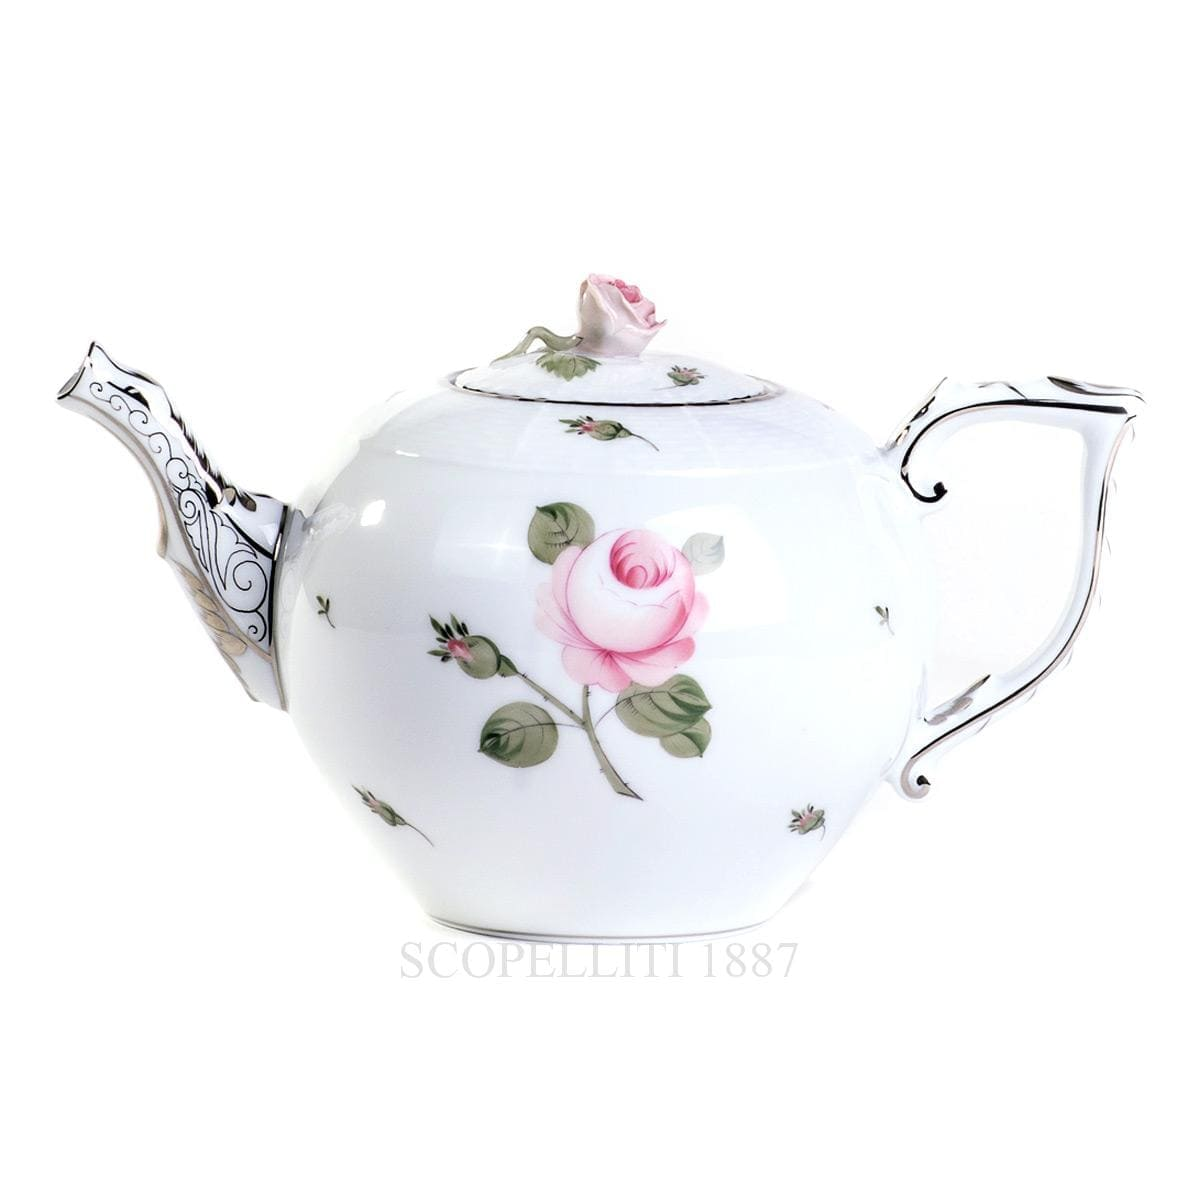 Herend Viennese Rose Platinum Teapot with Rose 604-0-09 VGR-PT